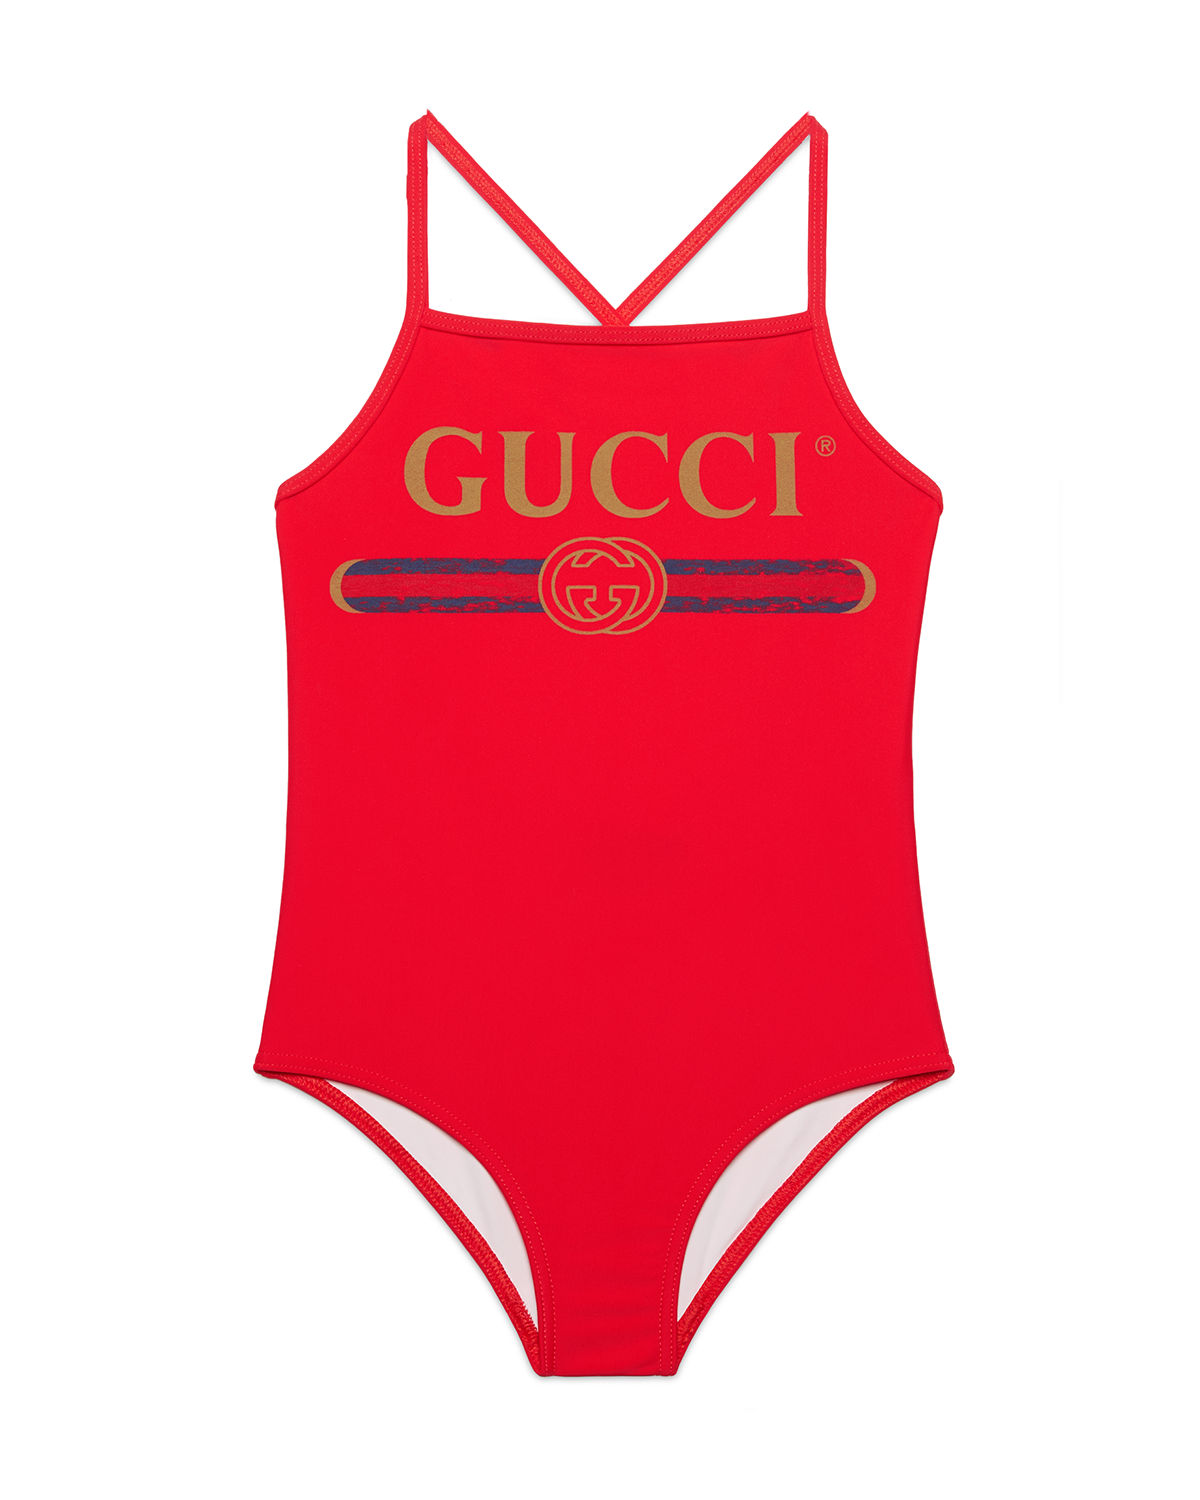 Gucci One-Piece Logo Swimsuit In Red